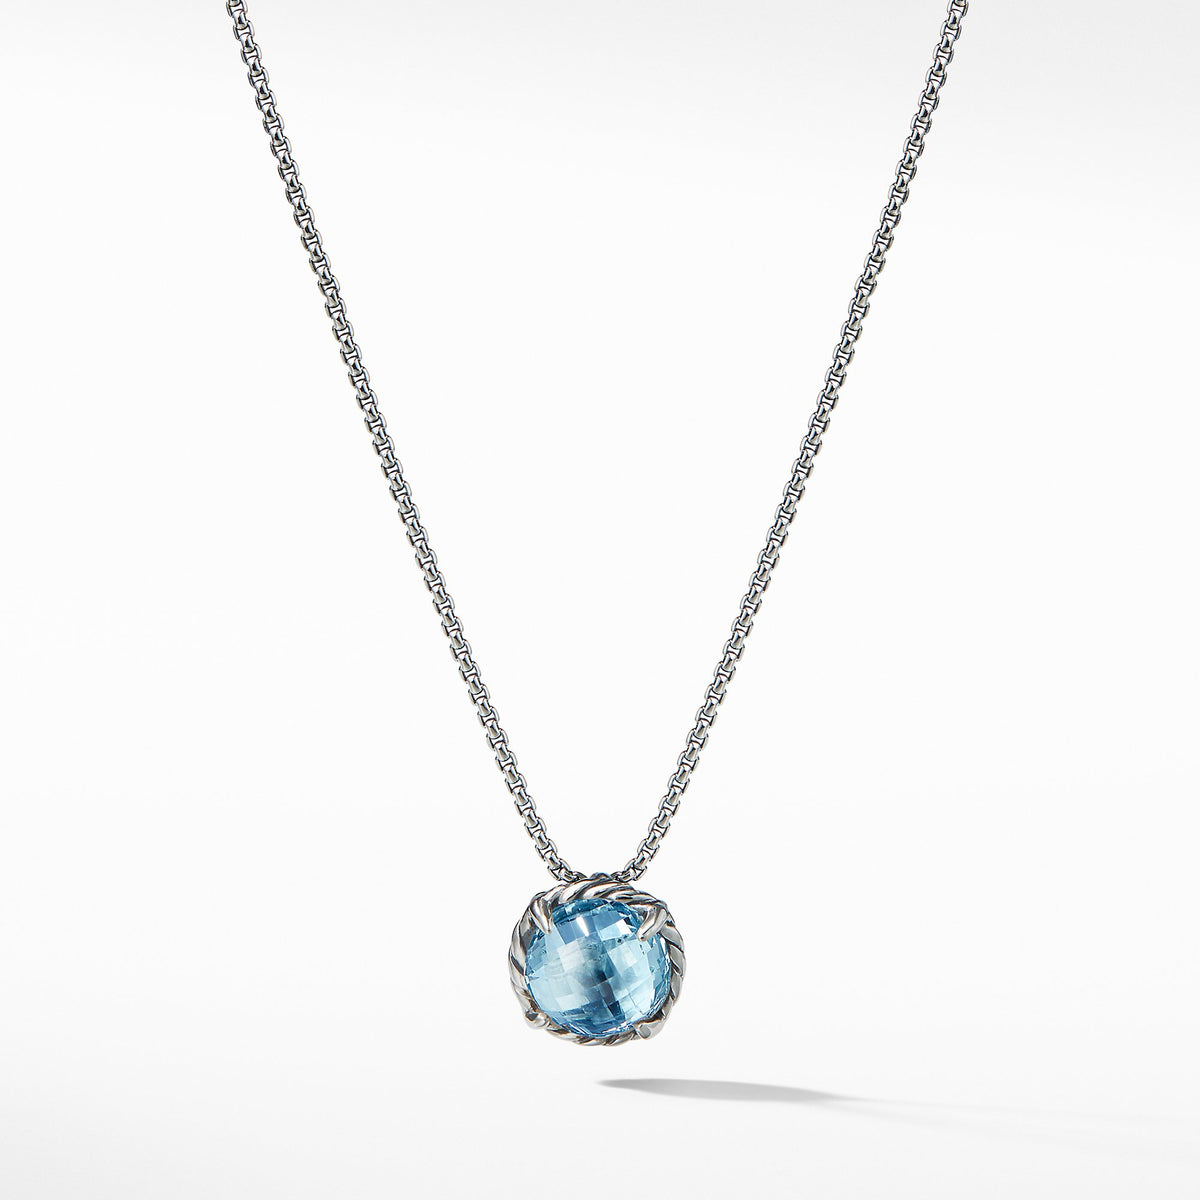 Chatelaine Pendant Necklace with Blue Topaz